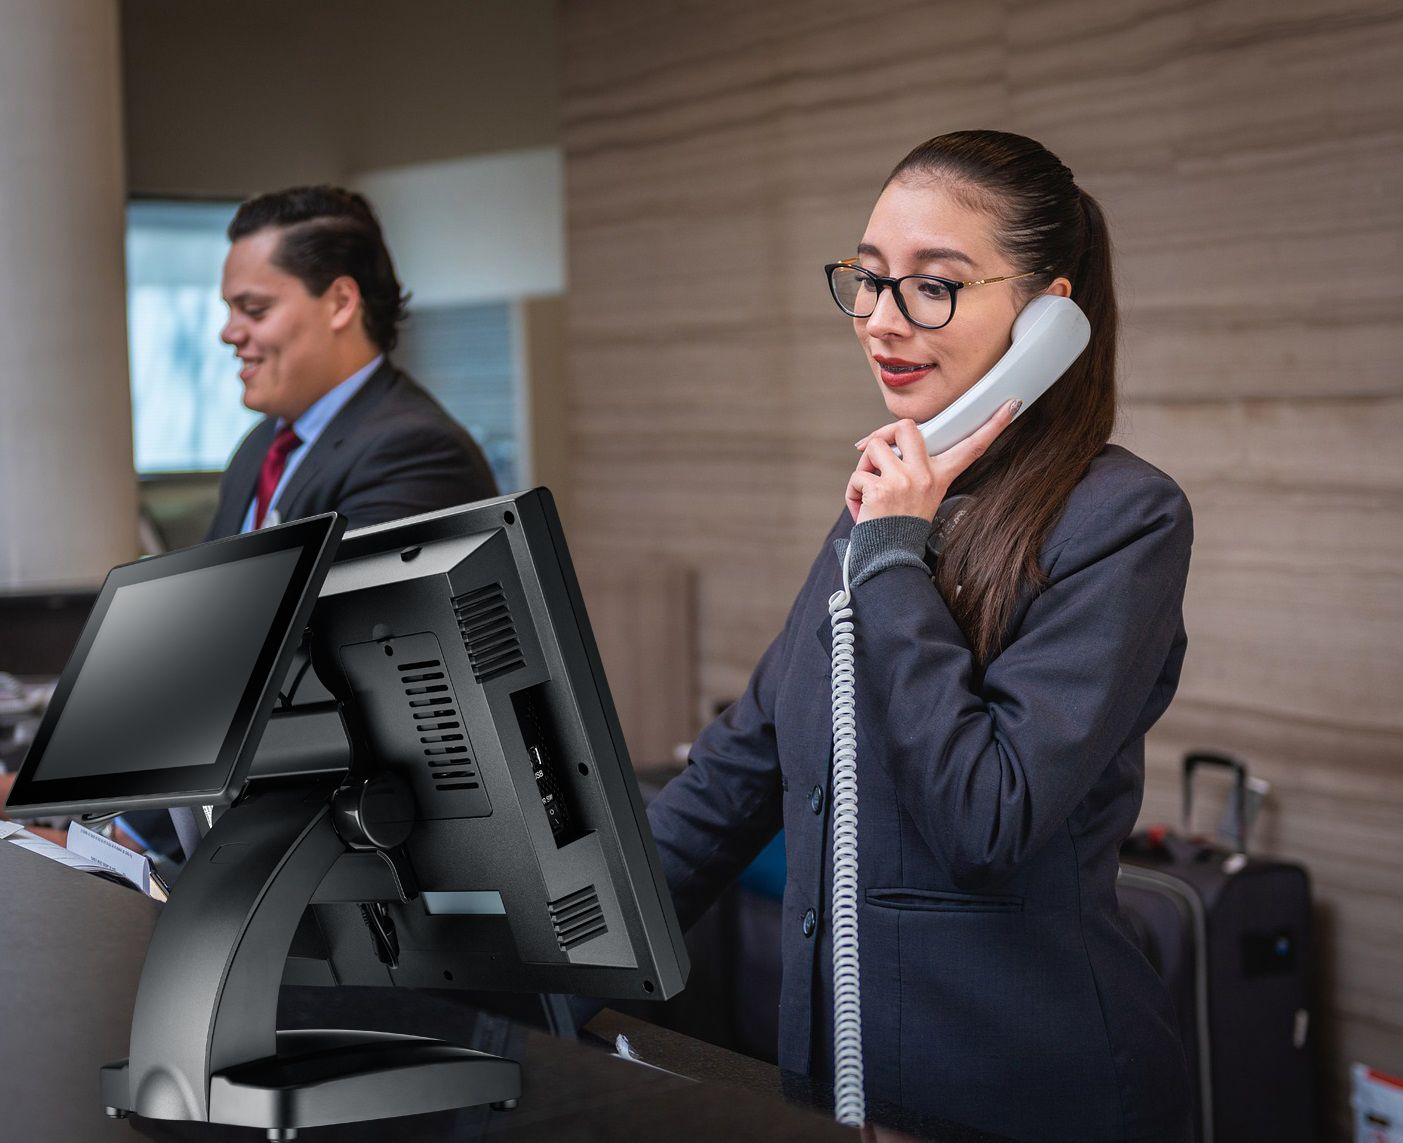 TYSSO provides 17-inch Full Flat Touch Screen POS System for hospitality service.